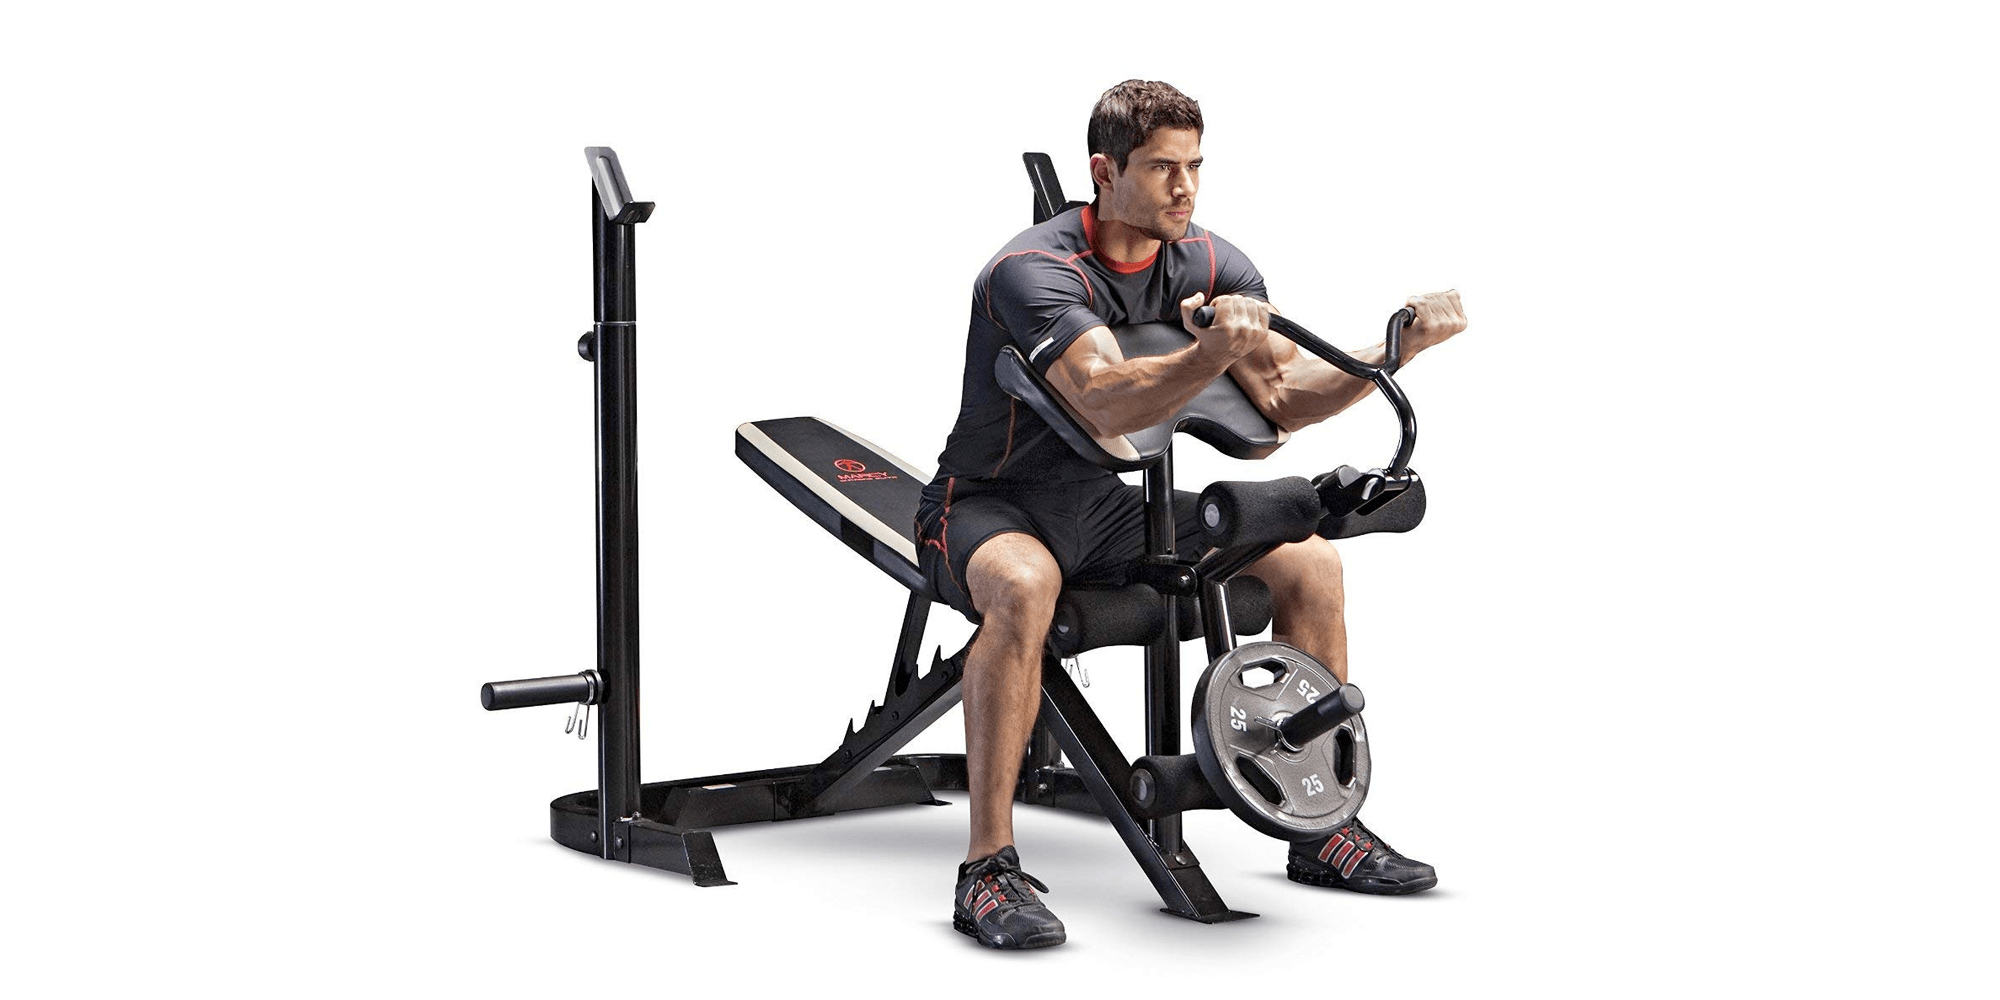 Get In Shape With This Adjustable Olympic Weight Bench For